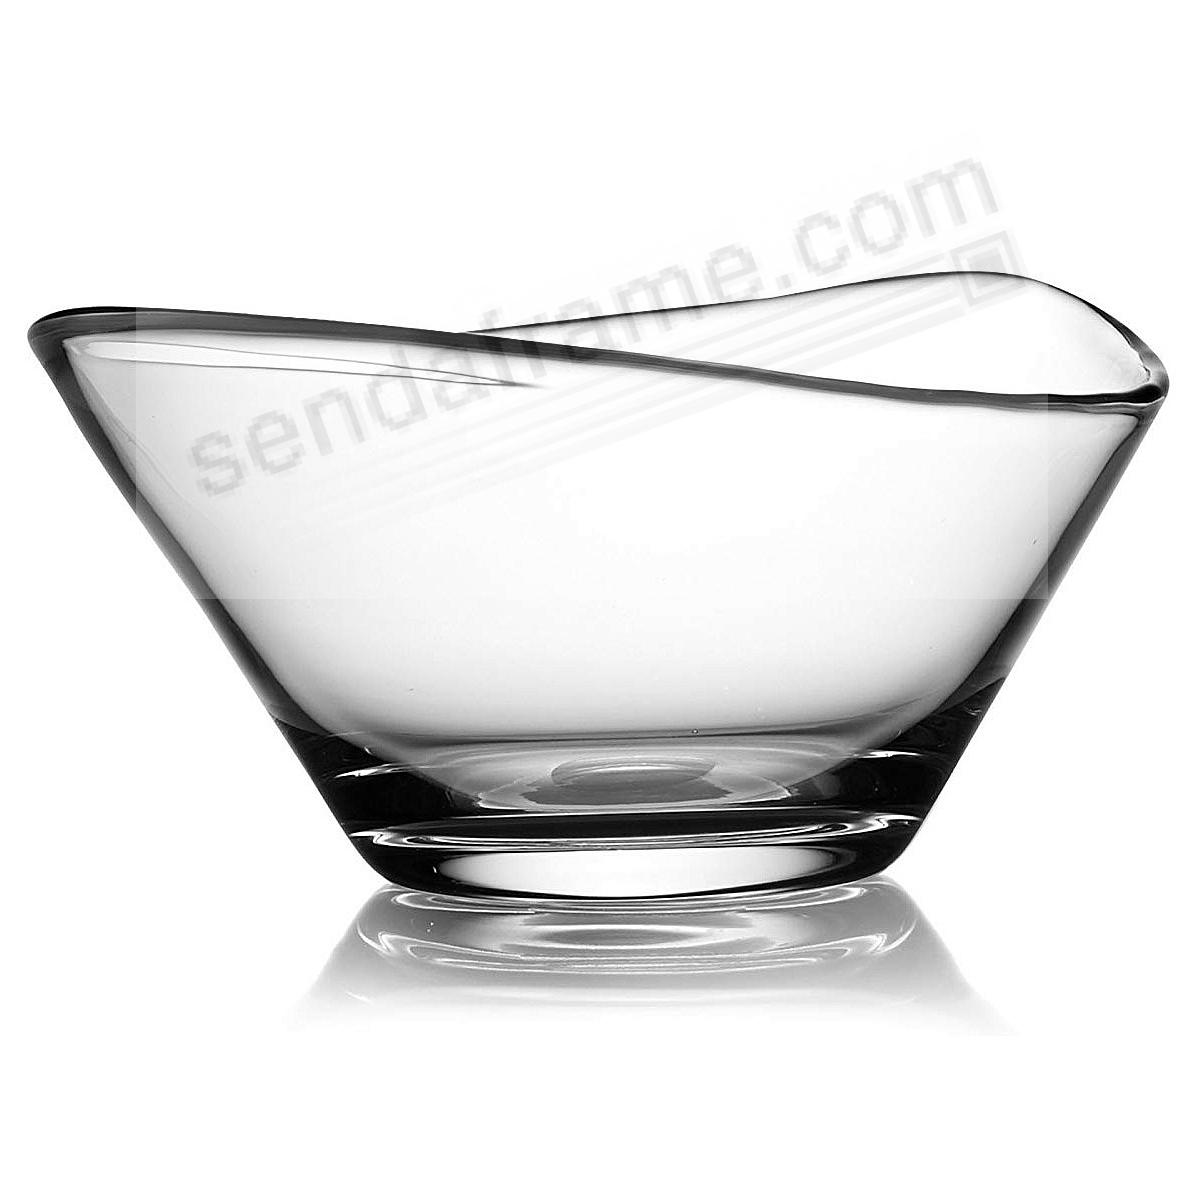 The MODERNE GLASS 9-inch BOWL by Nambe®